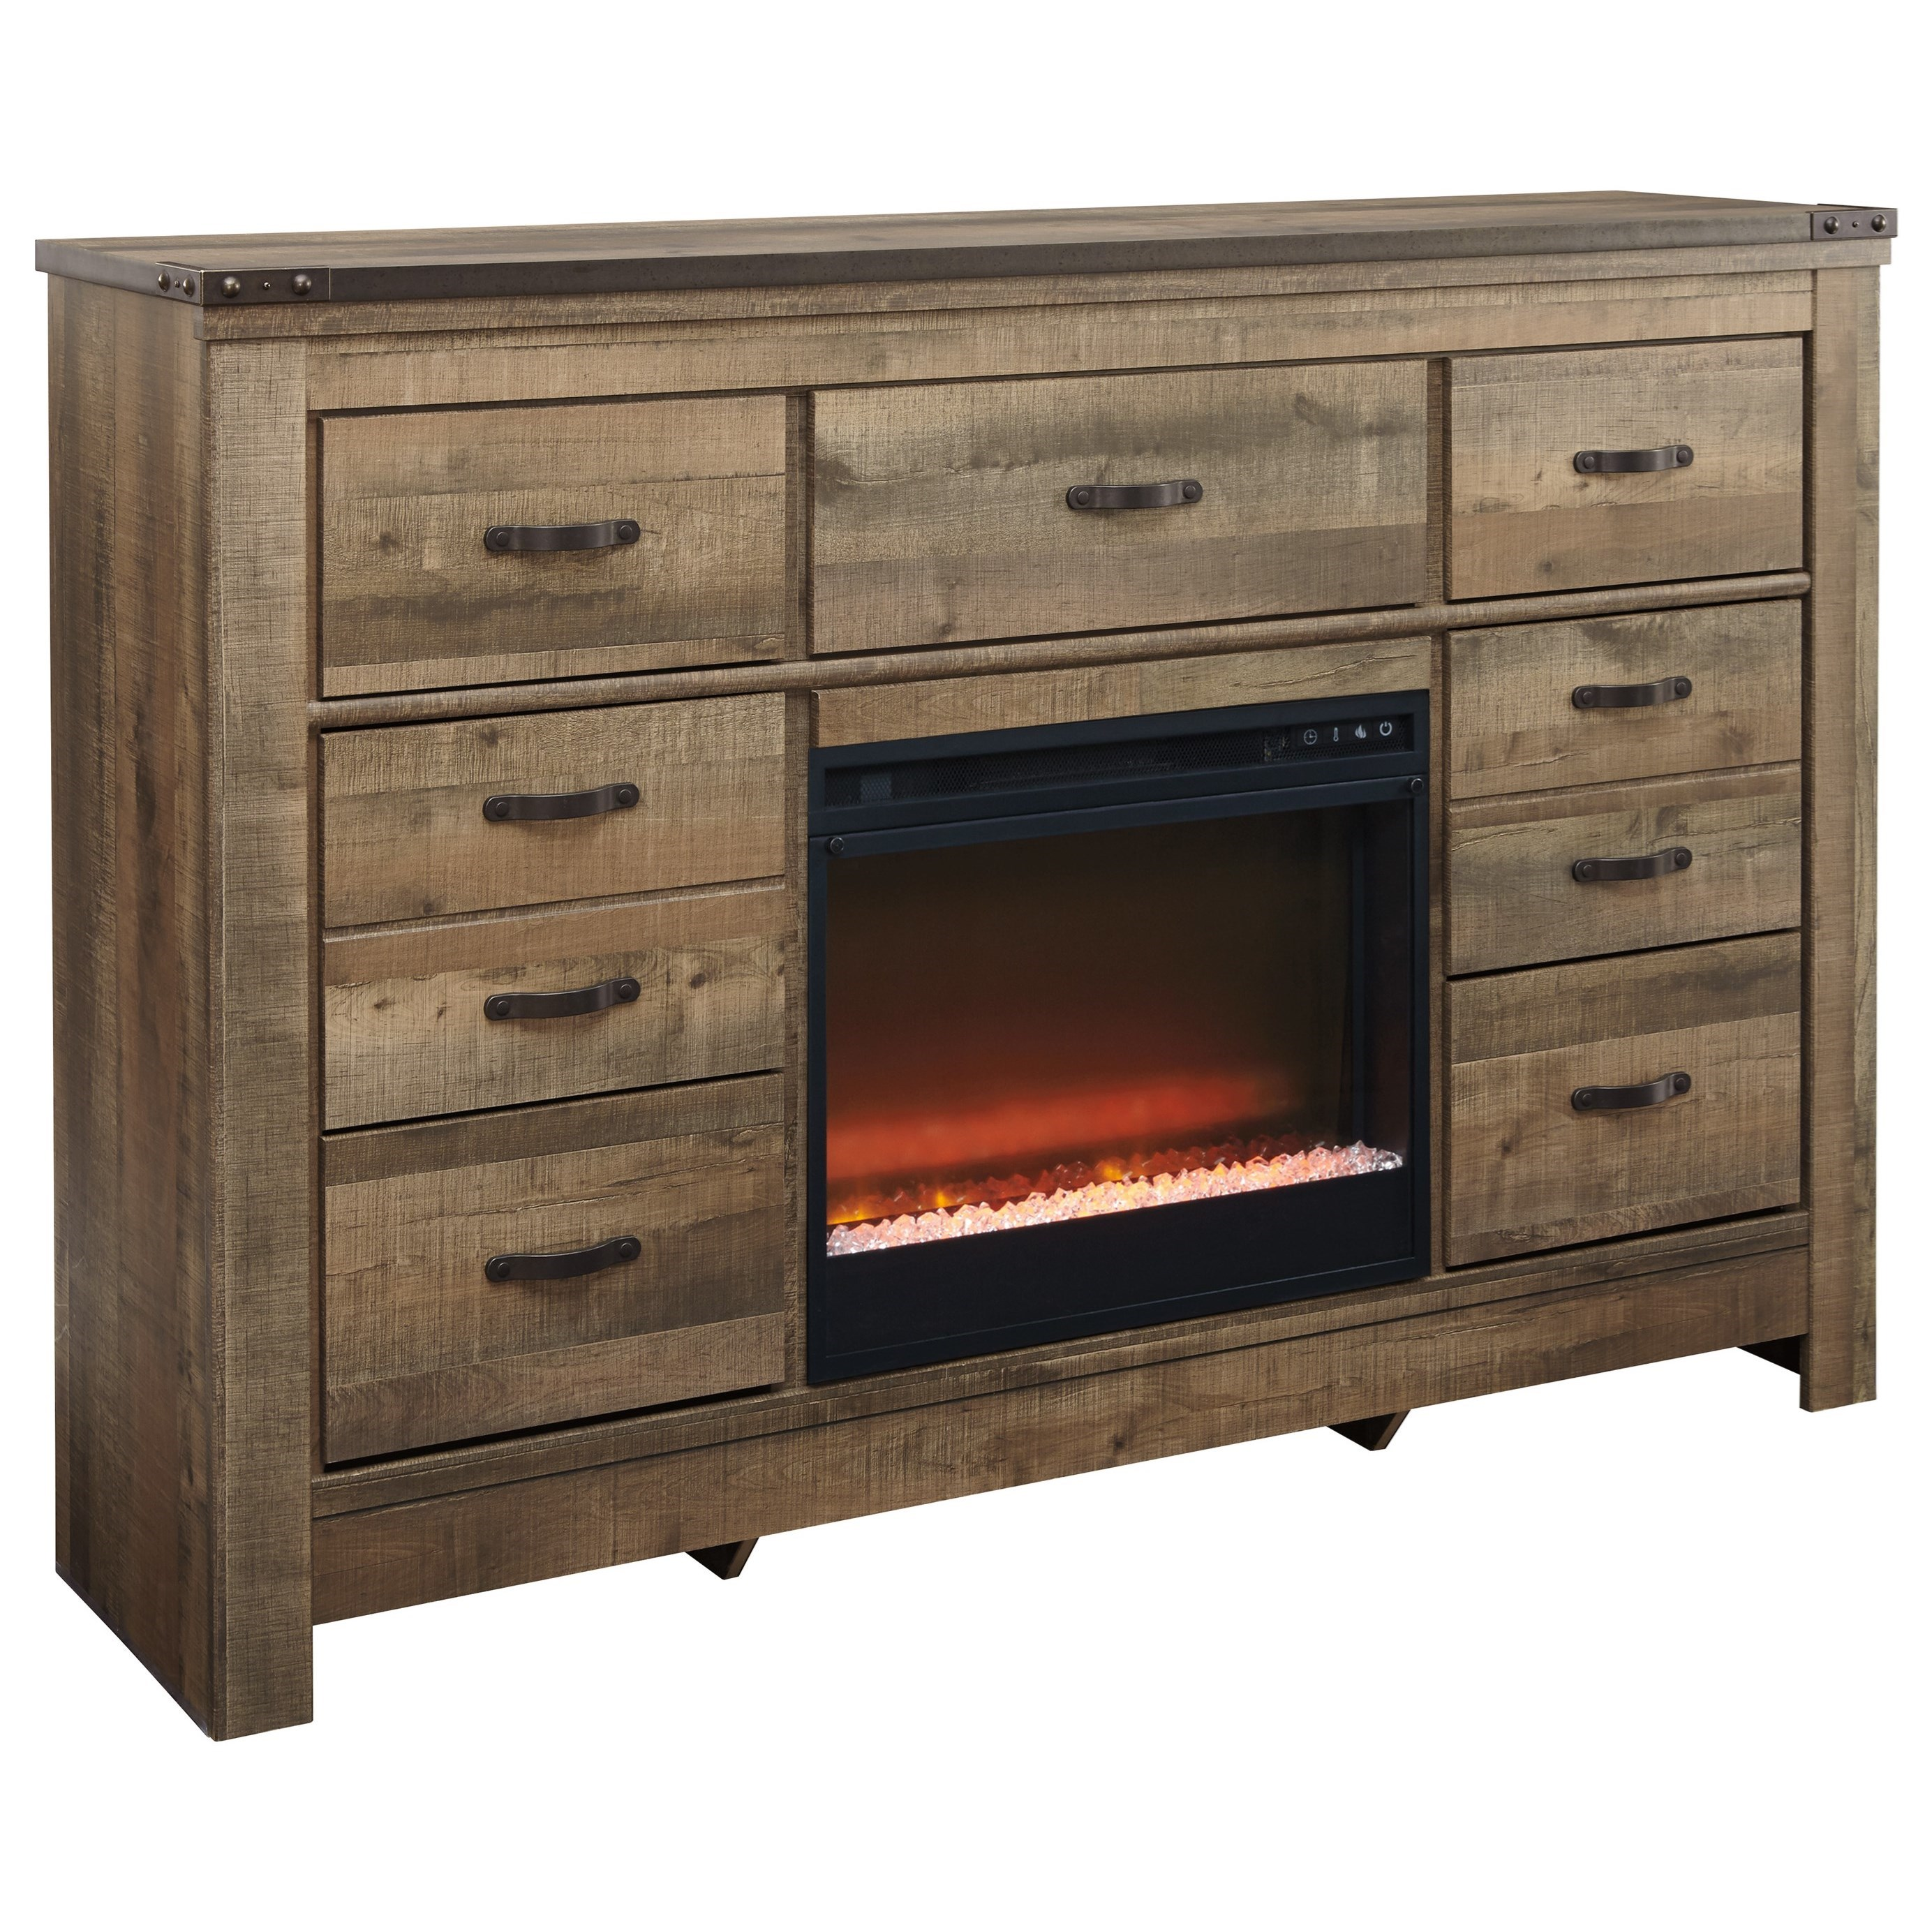 Signature Design By Ashley Trinell Rustic Dresser With